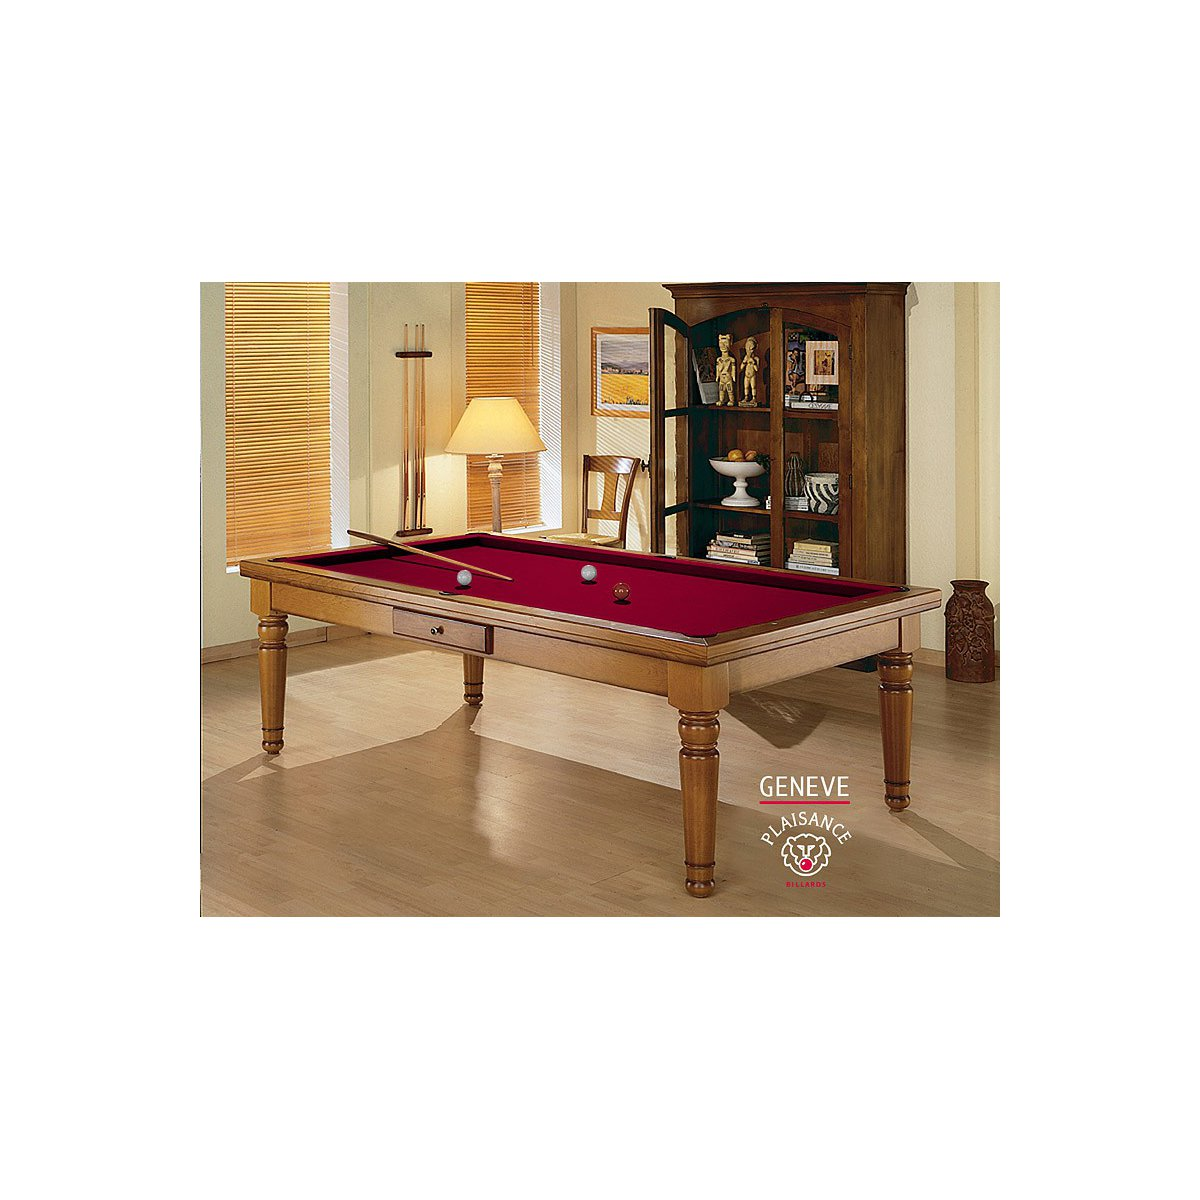 Table Billard Convertible Gen Ve Billard De Luxe